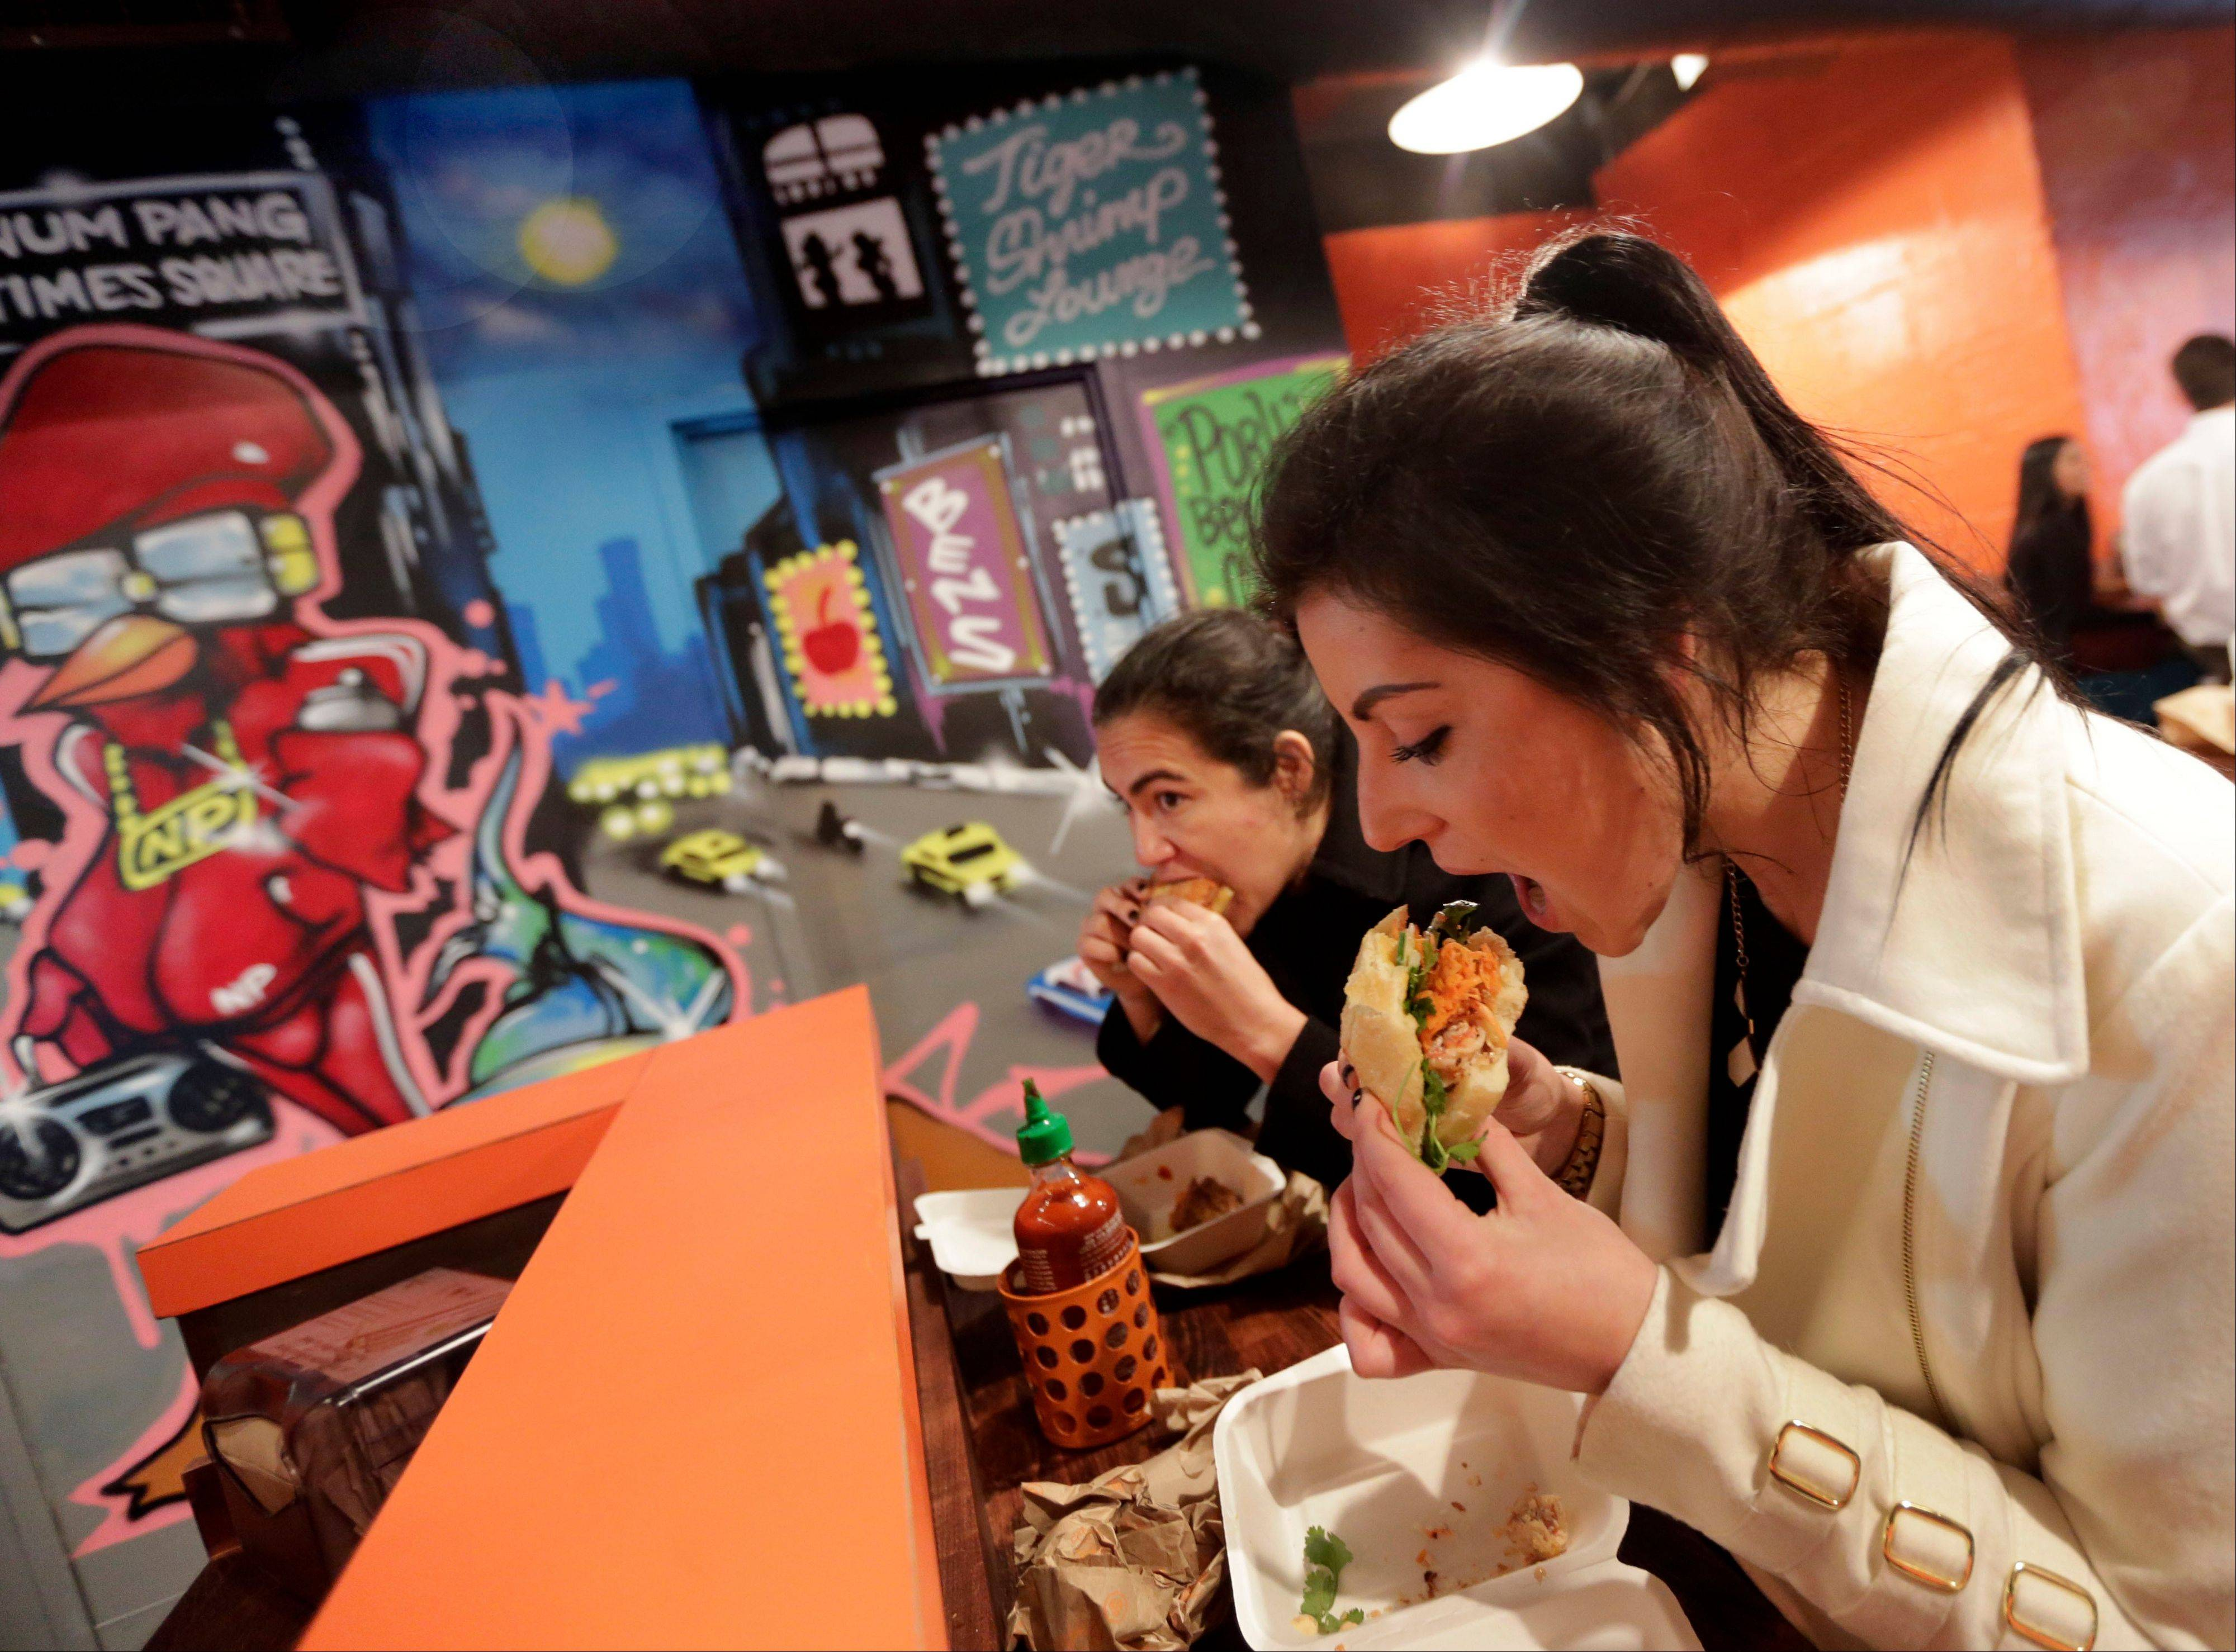 Krista Agatielli, right, eats at Cambodian sandwich shop Num Pang, near New York's Rockefeller Center.